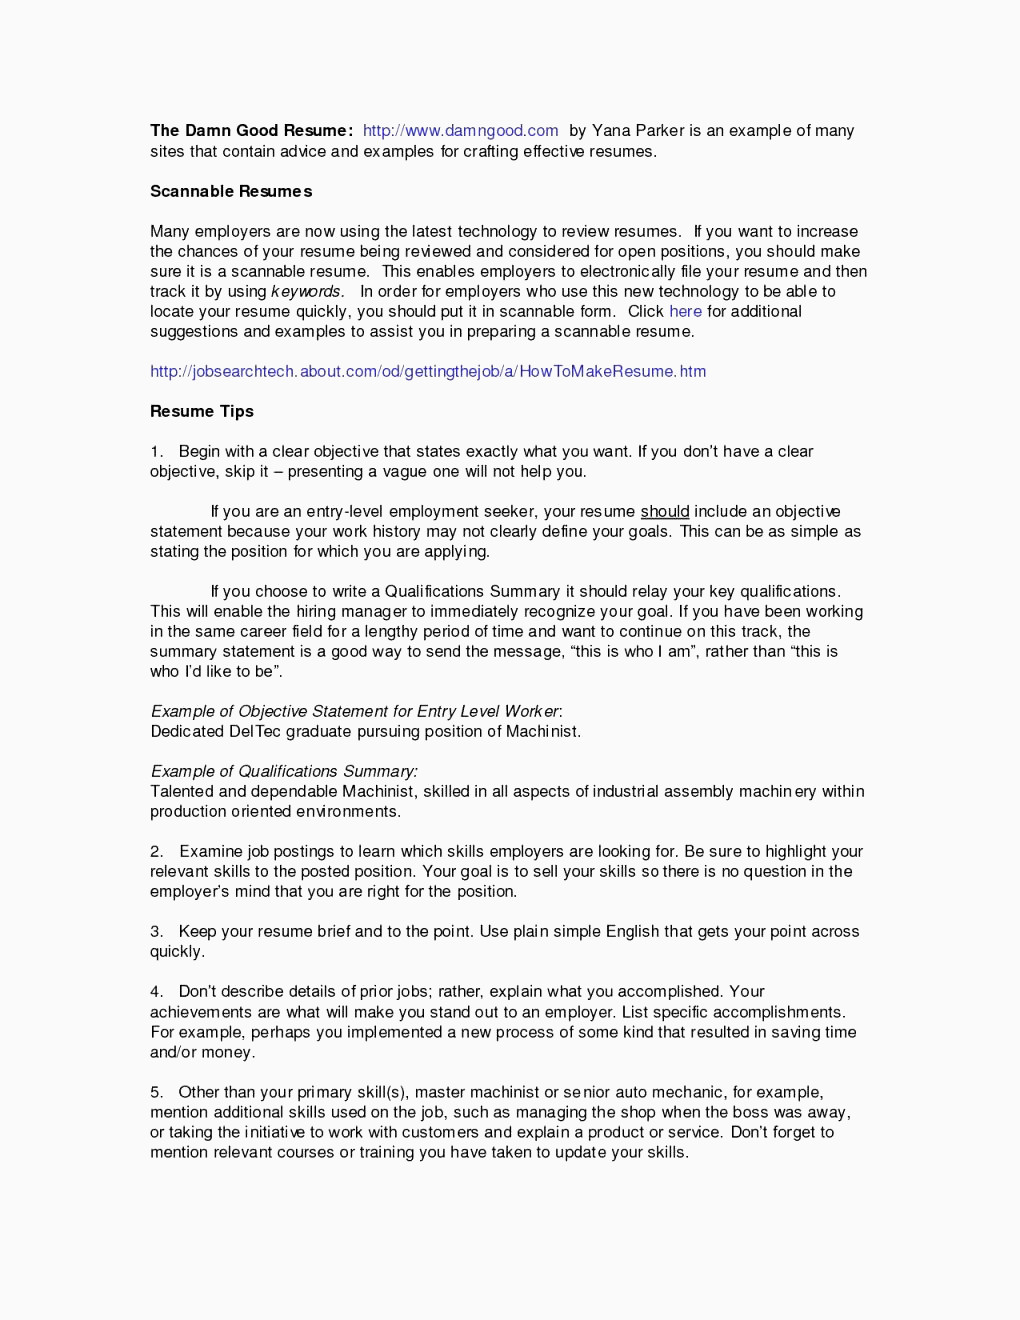 Lettre De Motivation Receptionniste Lettre De Motivation Barman Luxe Cv Et Lettre De Motivation En